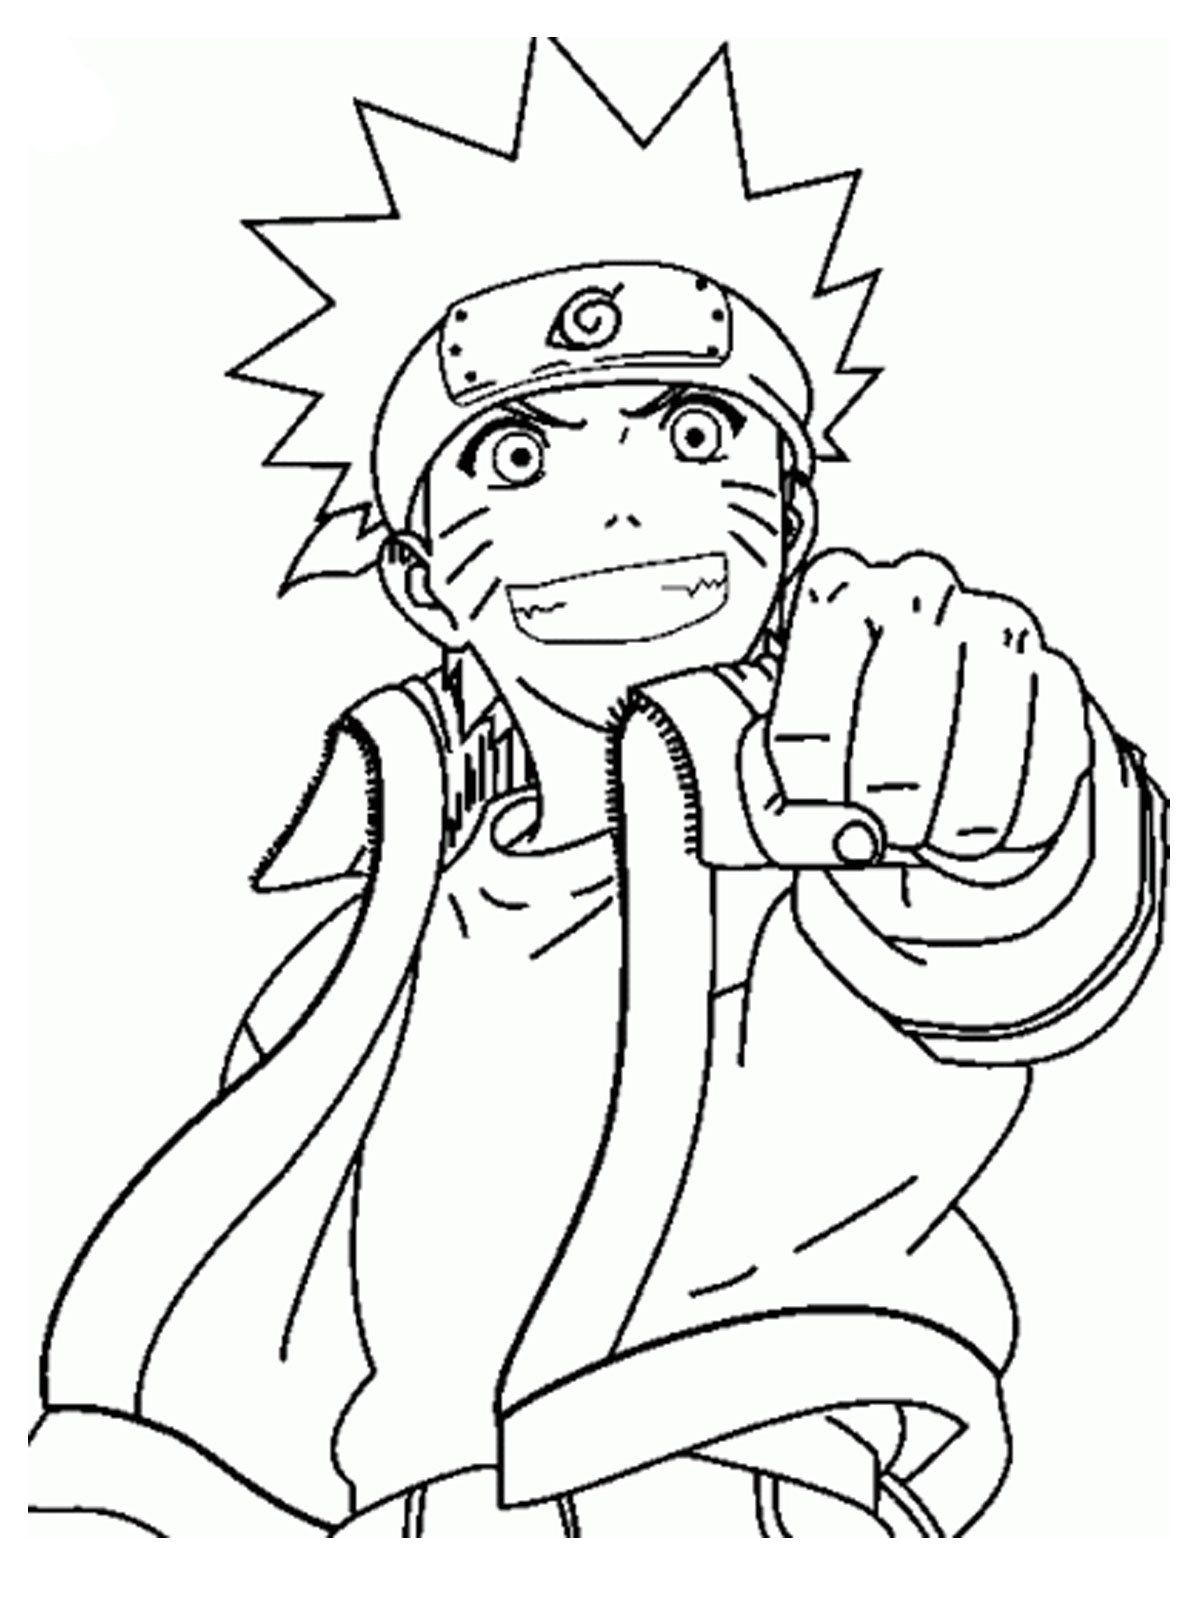 Valentines Coloring Sheet For Older Children. Naruto